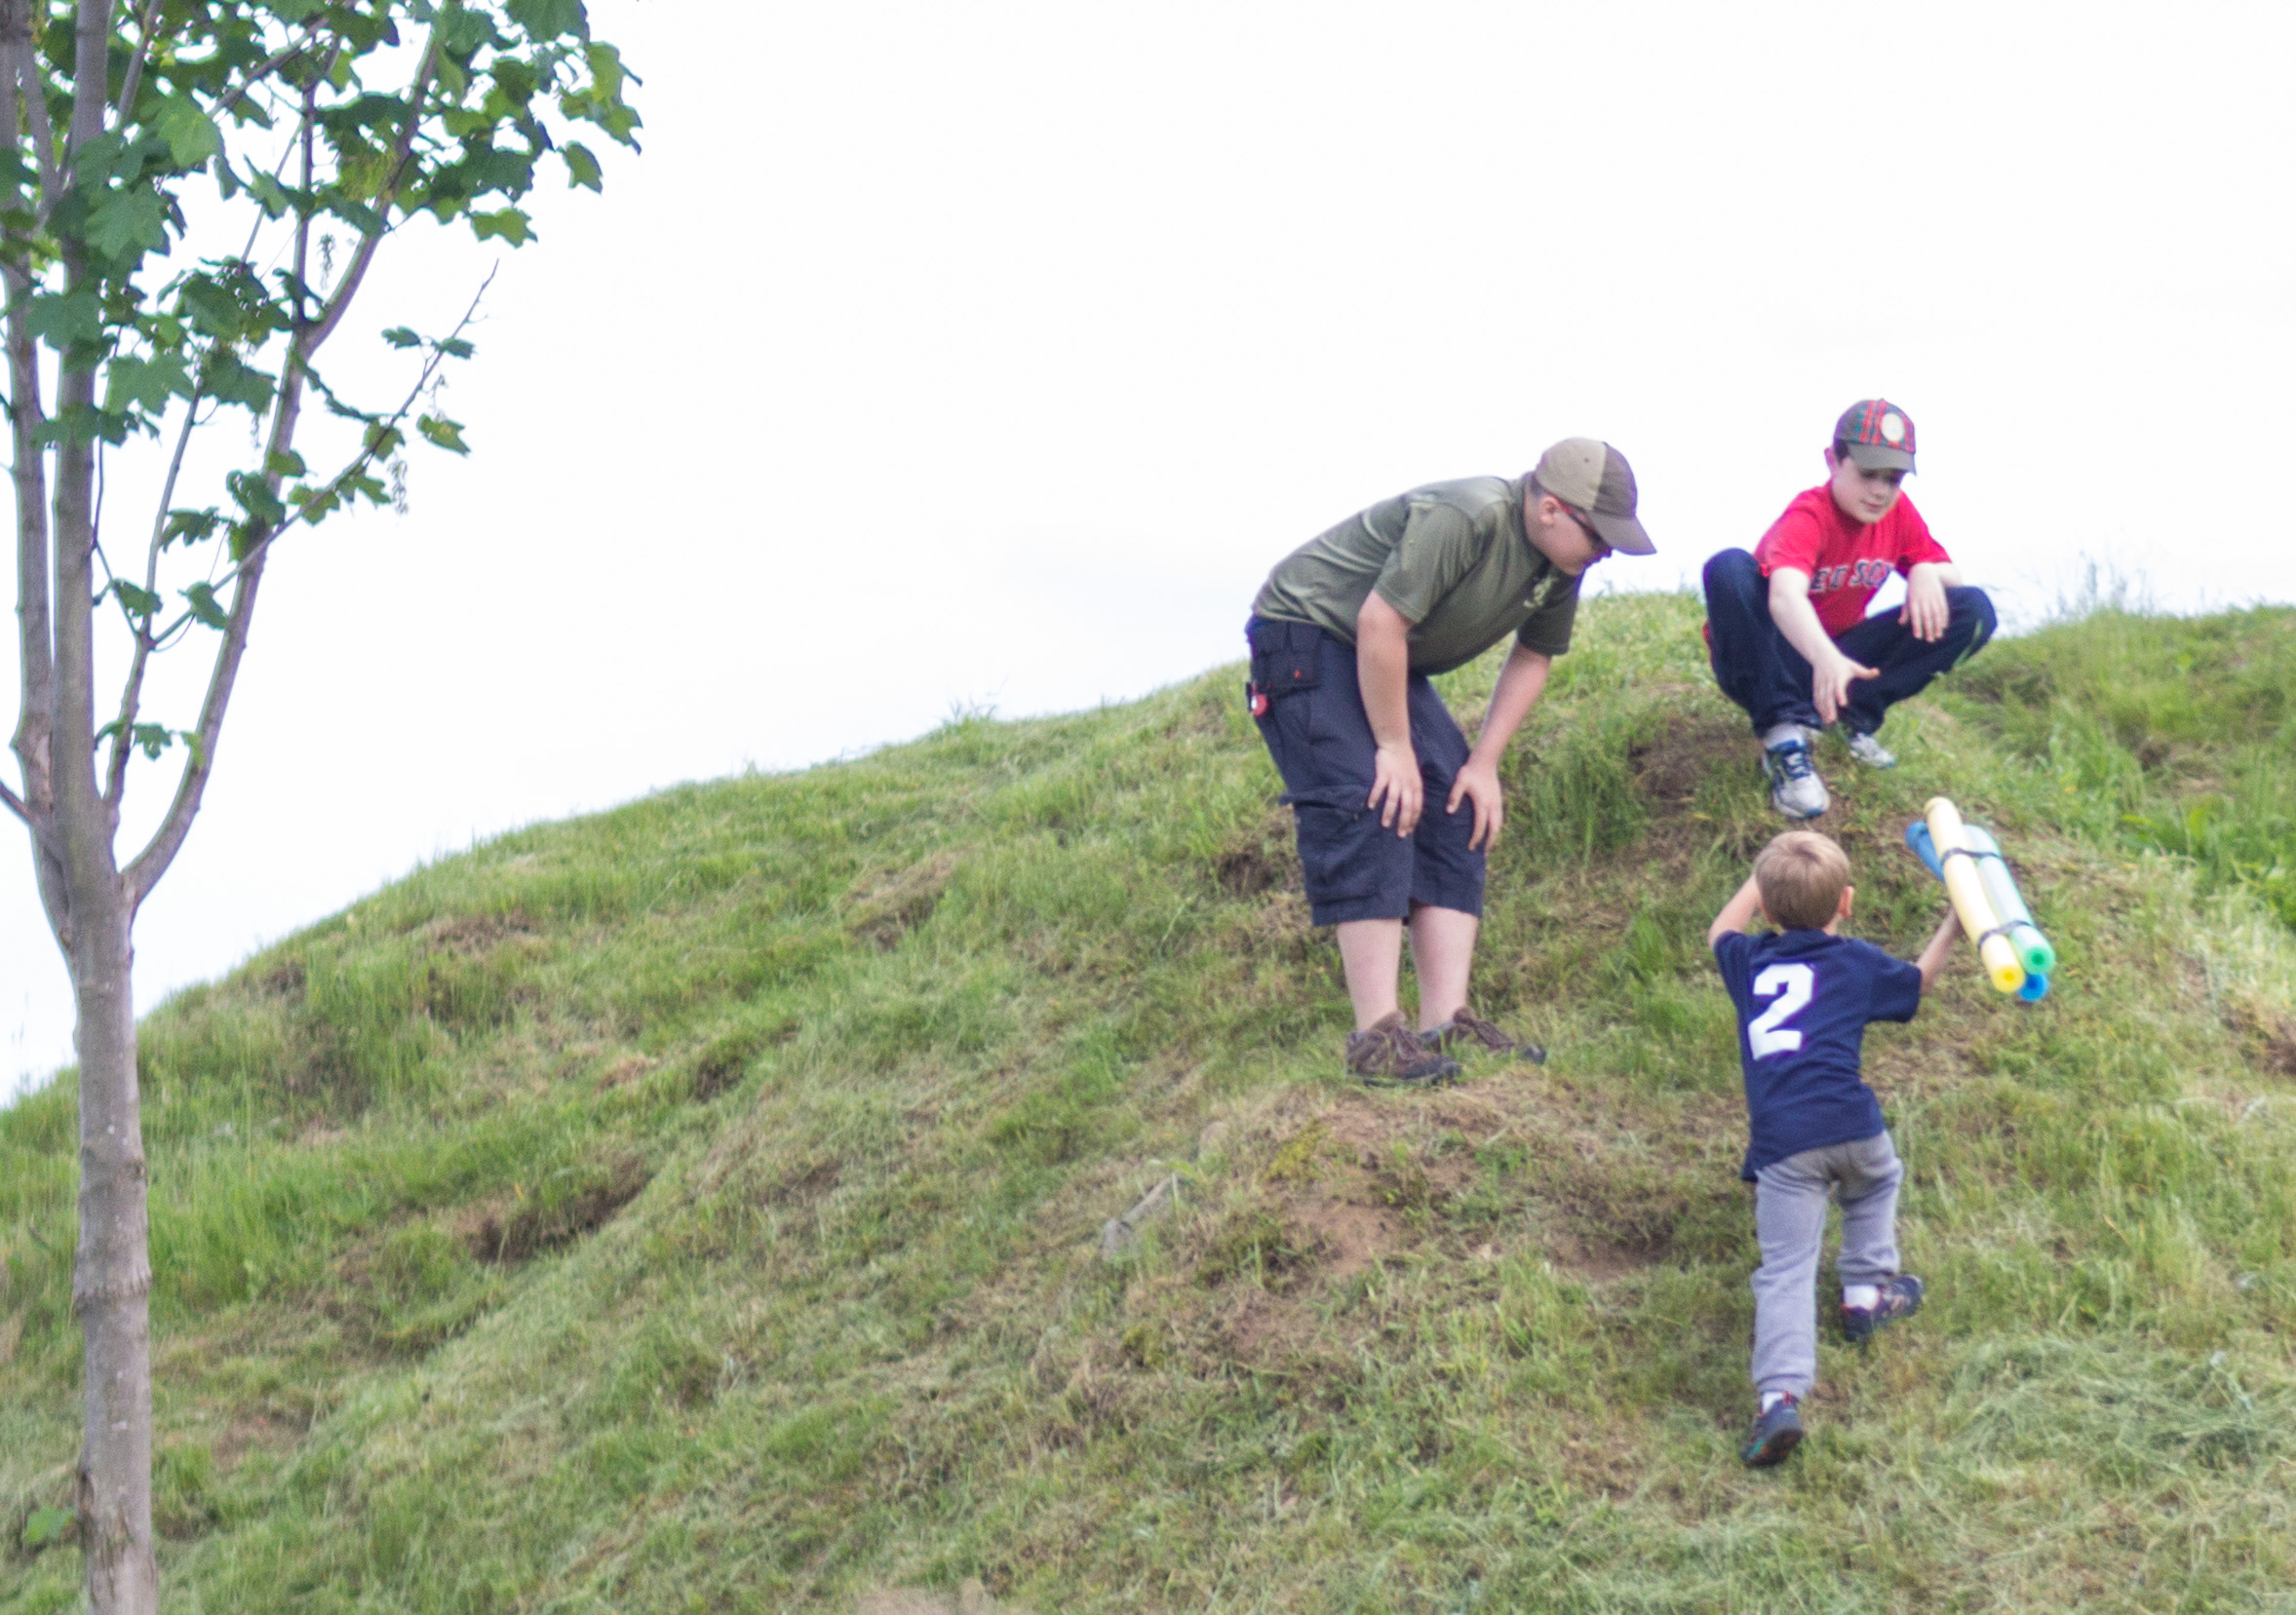 Cub Scouts Obstacle Course_02.jpg